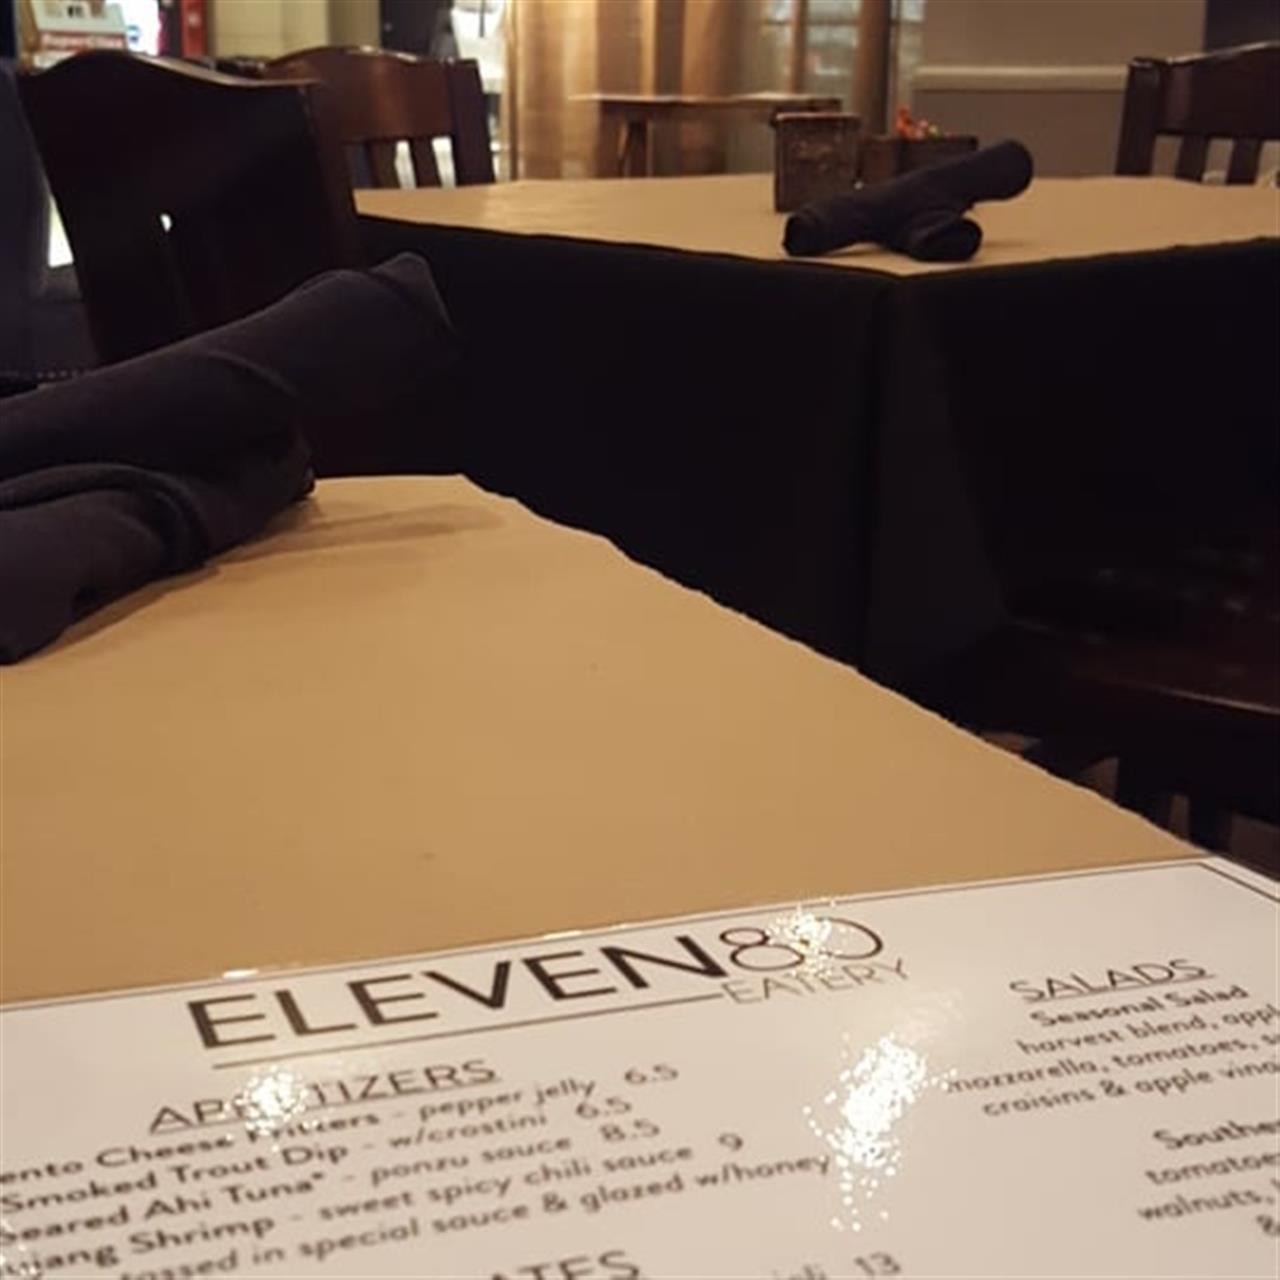 Time to try a new(ish) restaurant with my sweetheart #BooneNC #LeadingRElocal #boonecarlsons #eleven80